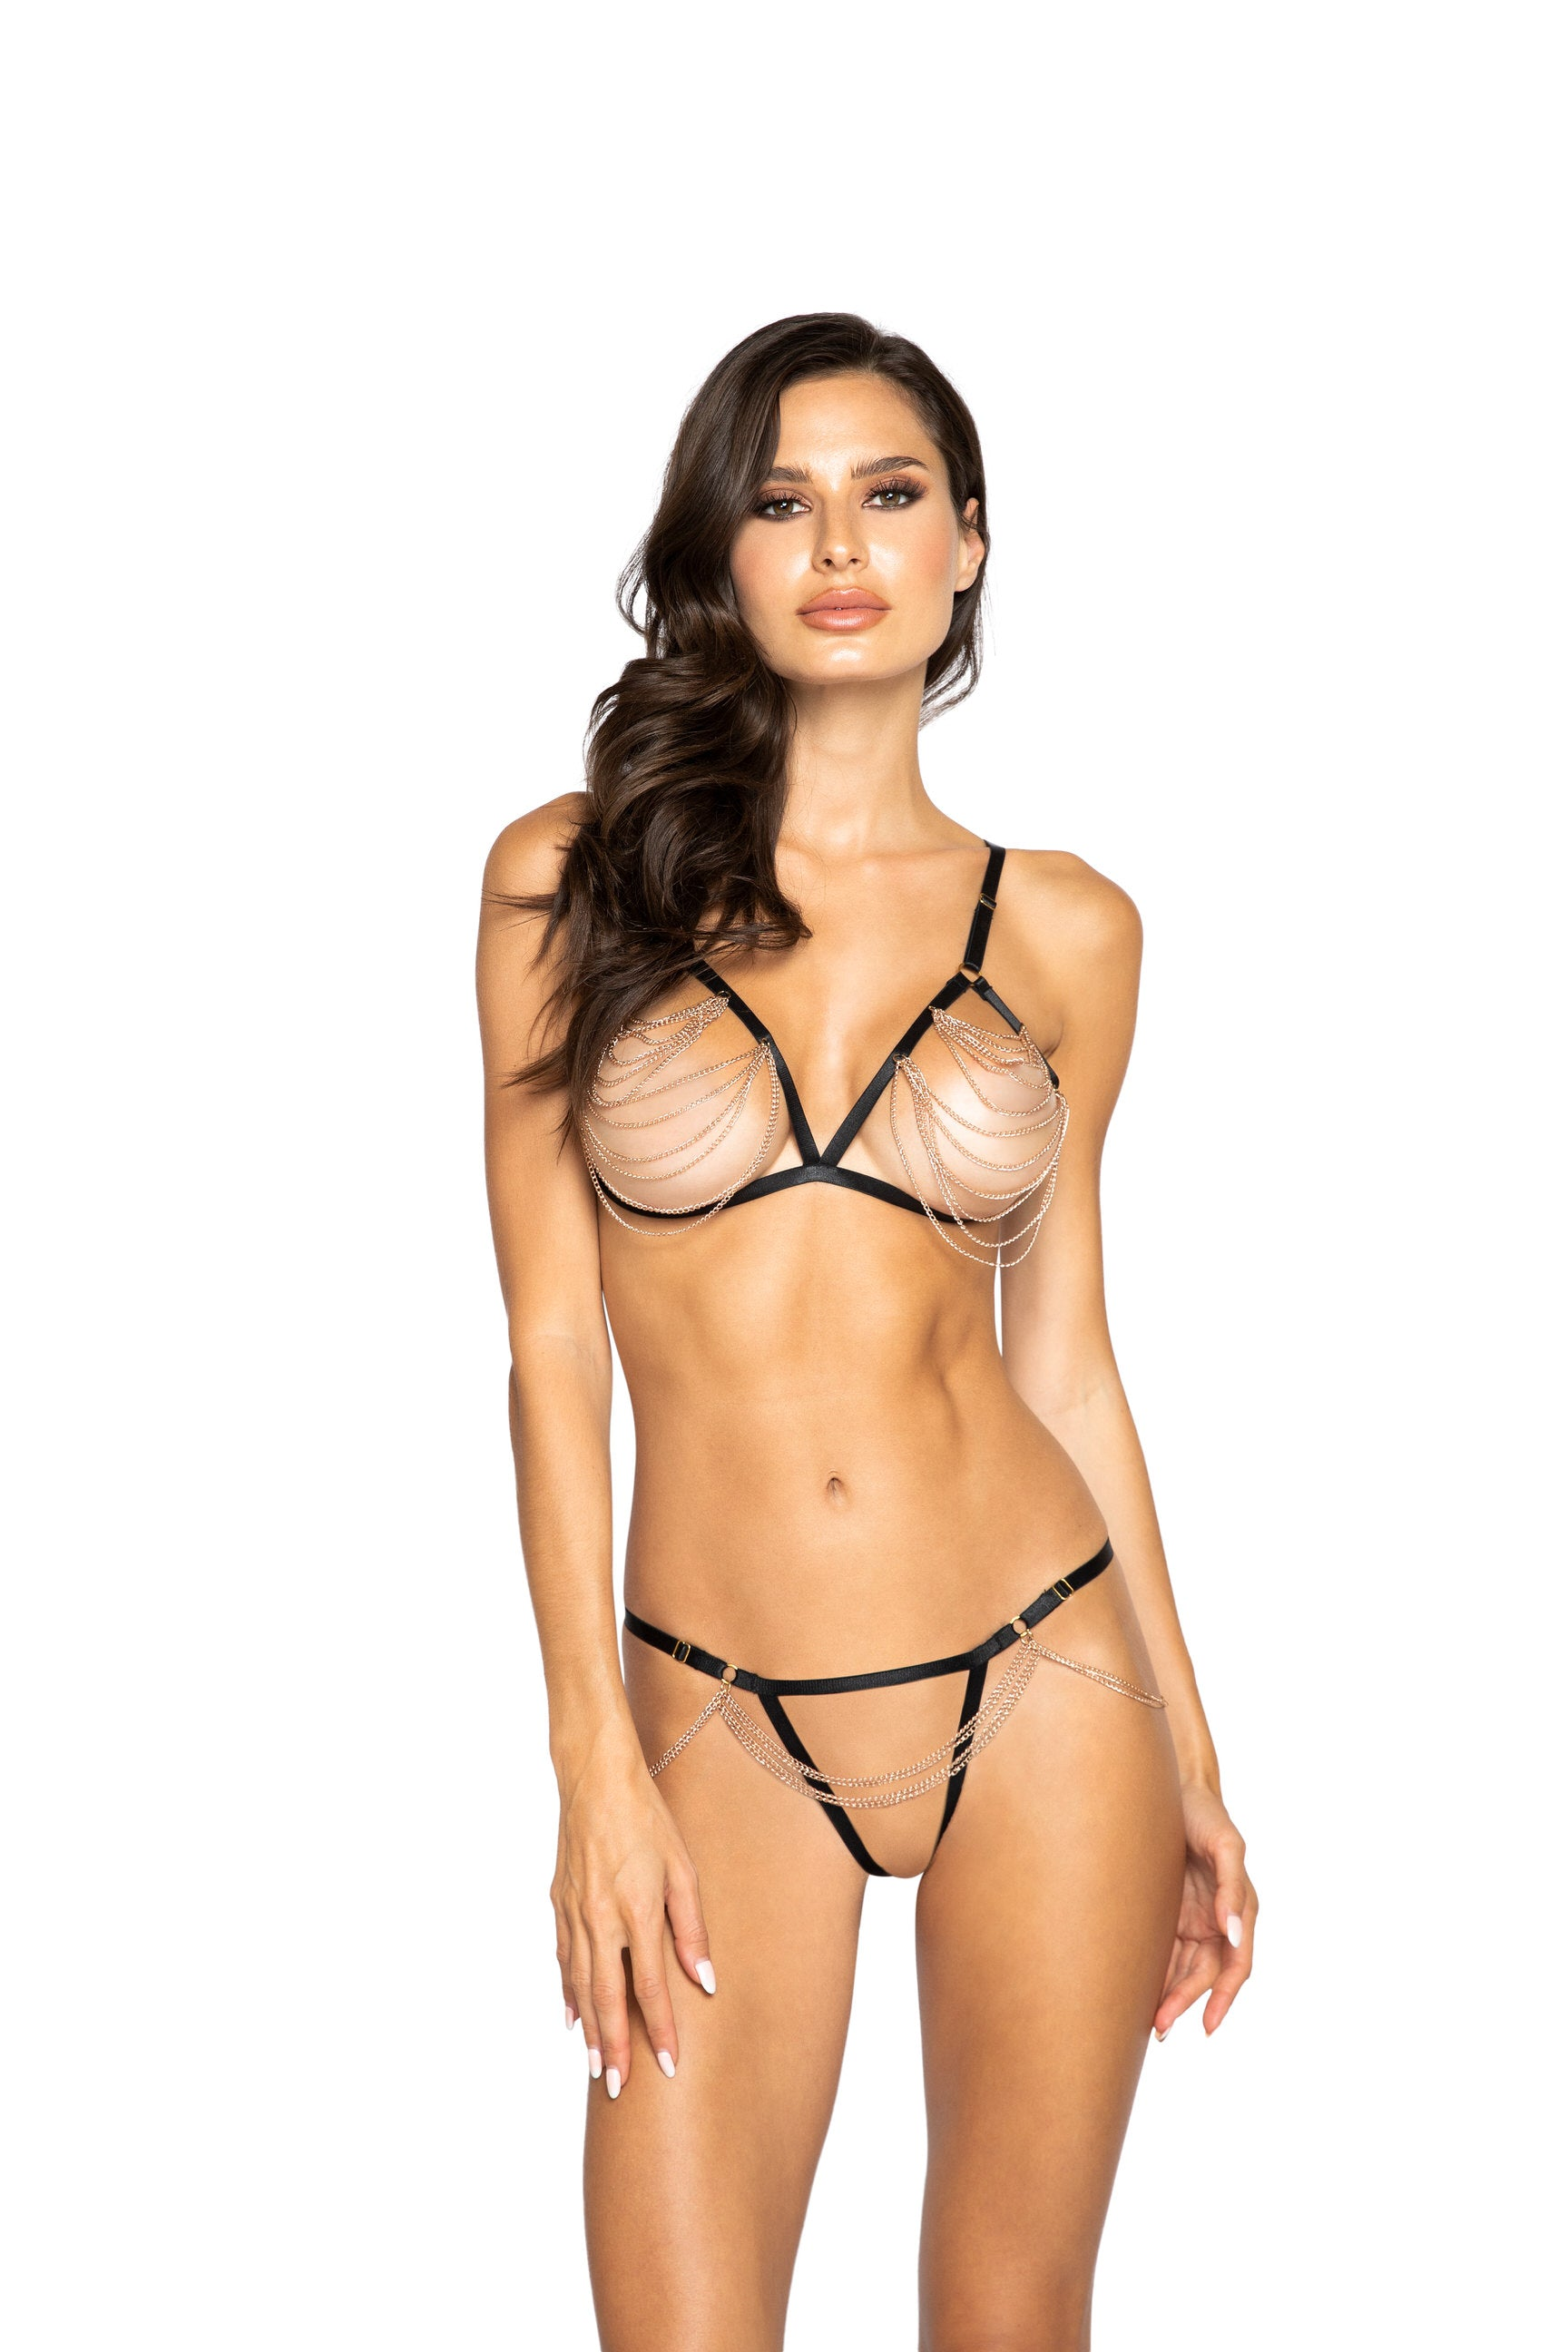 Roma Confidential LI359 Chained Lingerie Set Sexy Lingerie Set with Open Bra Covered with Chains and a Matching Open Thong also Covered with Chain